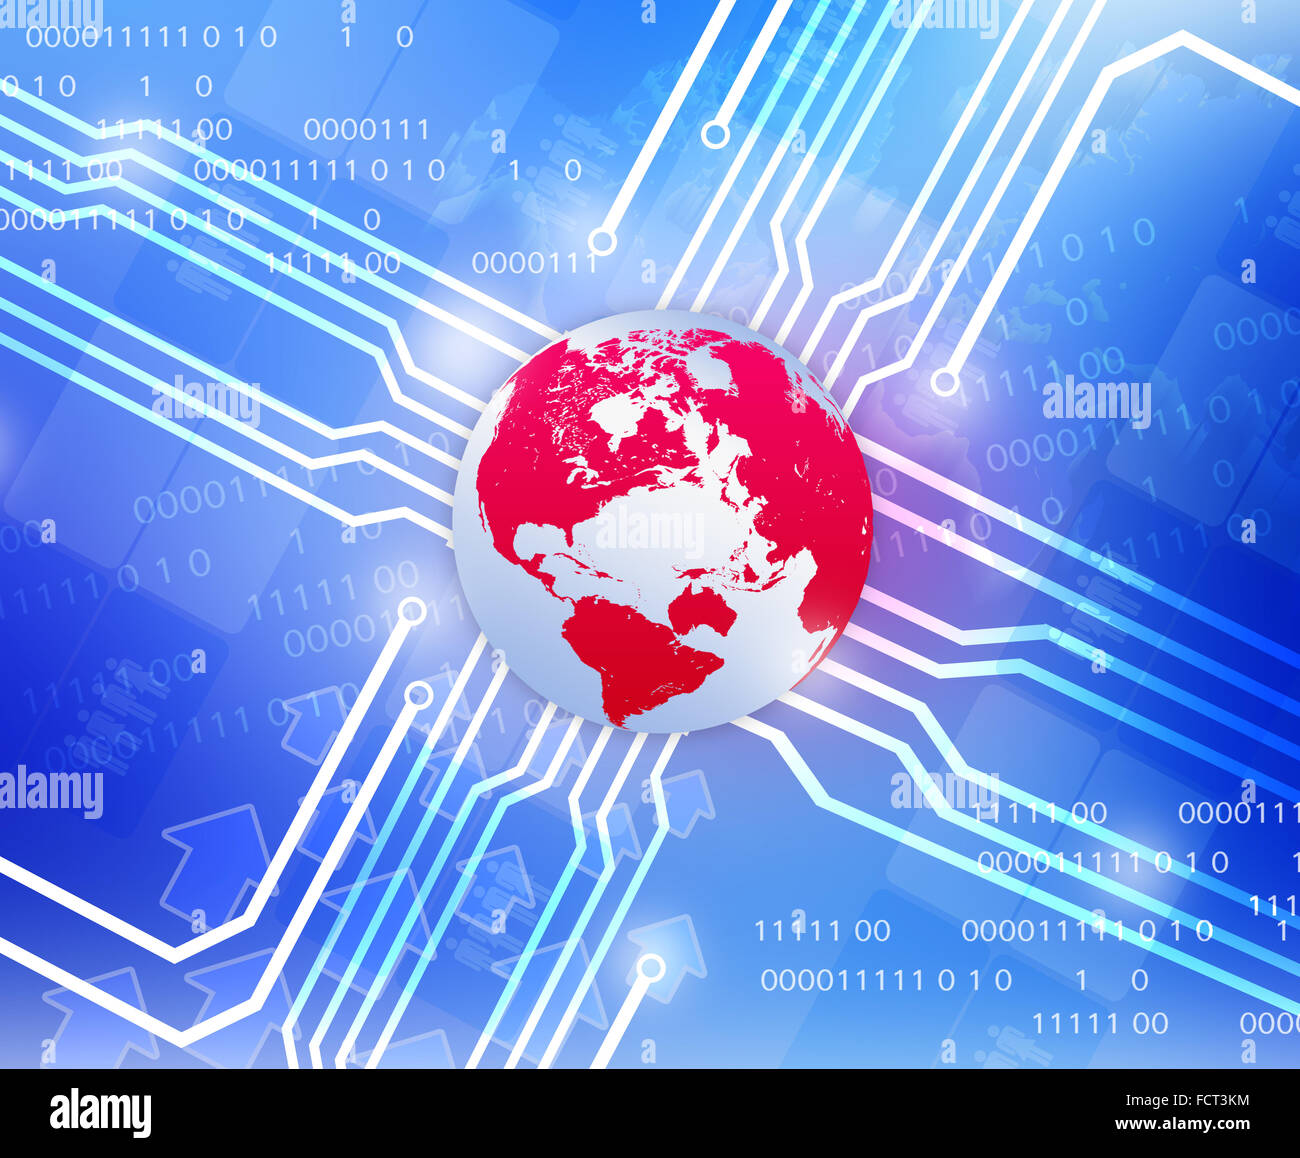 Wiring Diagram Stock Photos Images Alamy Cf Diagrams Red Globe World Map And Departing In Sides Image